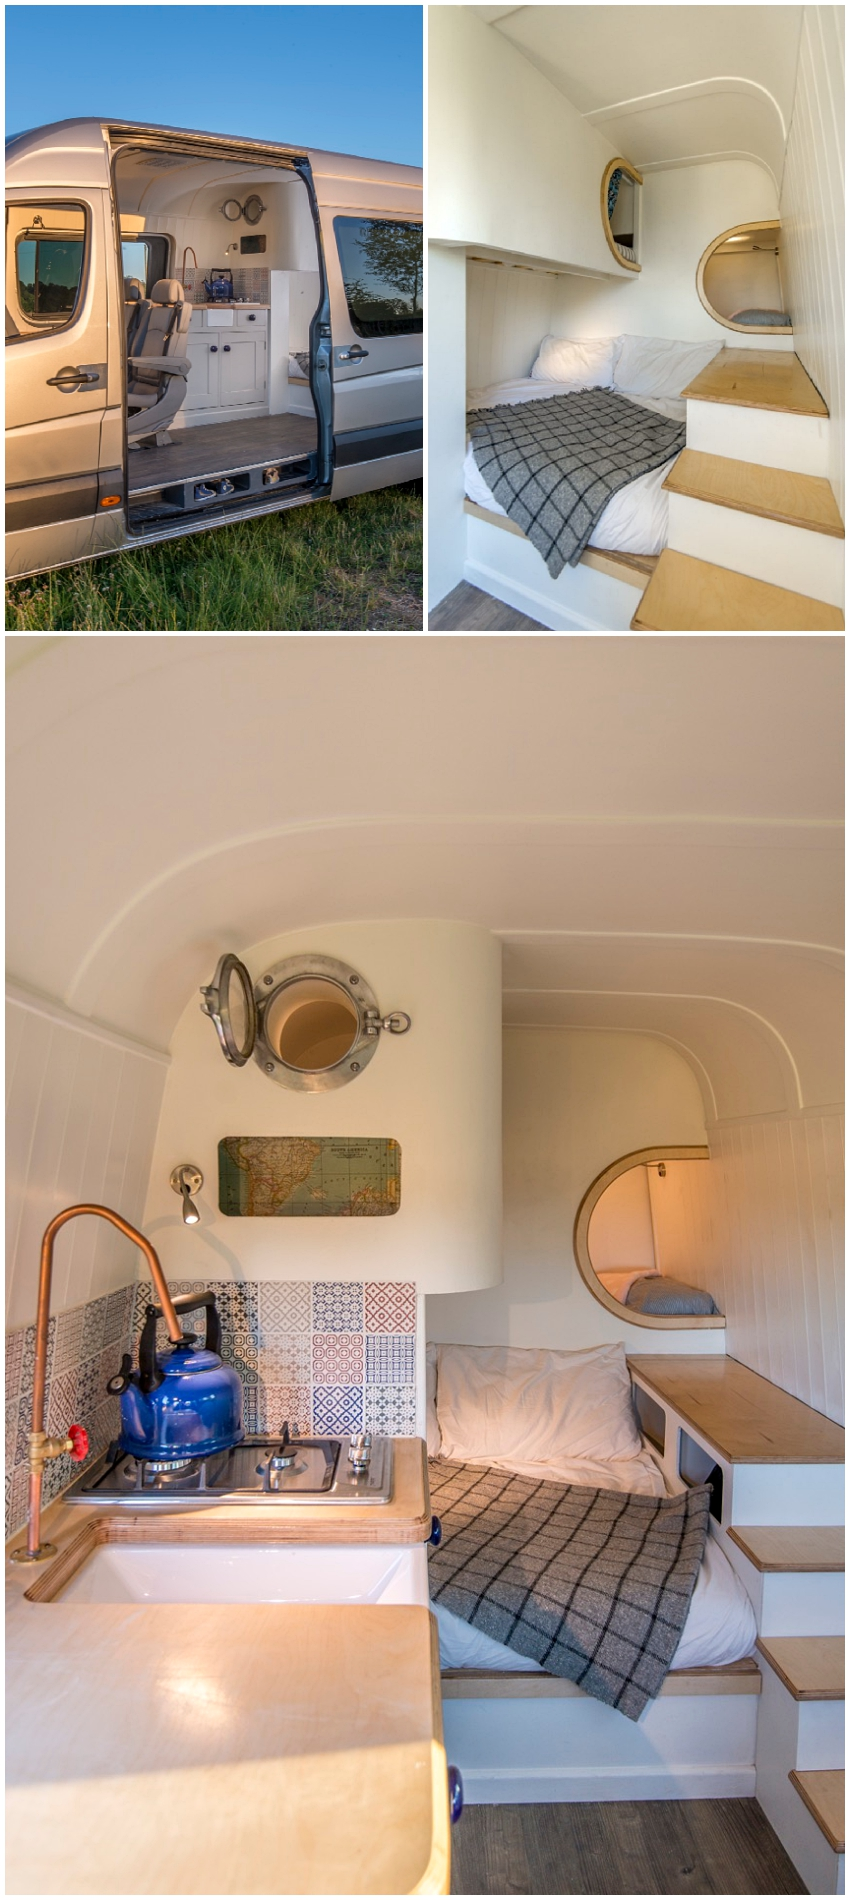 10 Brilliant RV Remodel Ideas for Better Use of Space - Tico ♥ Tina